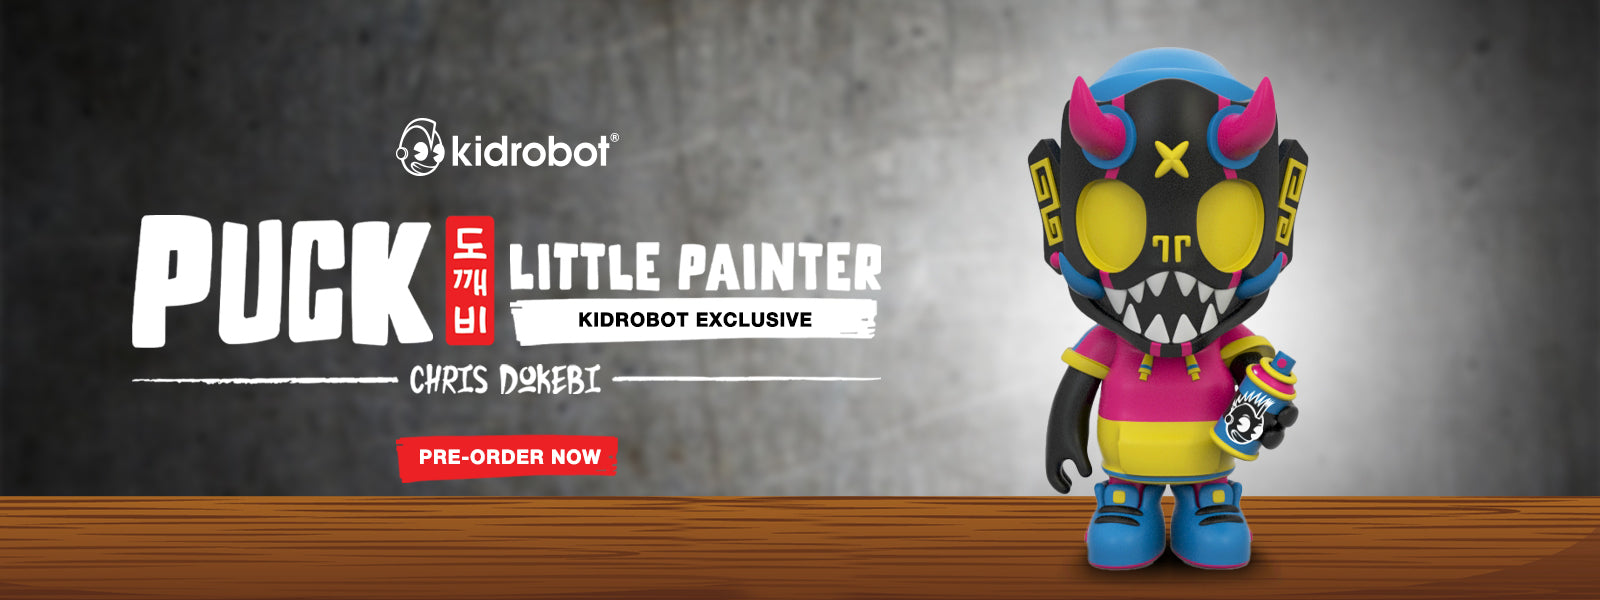 Puck Little Painter Vinyl Art Figure Kidrobot Exclusive